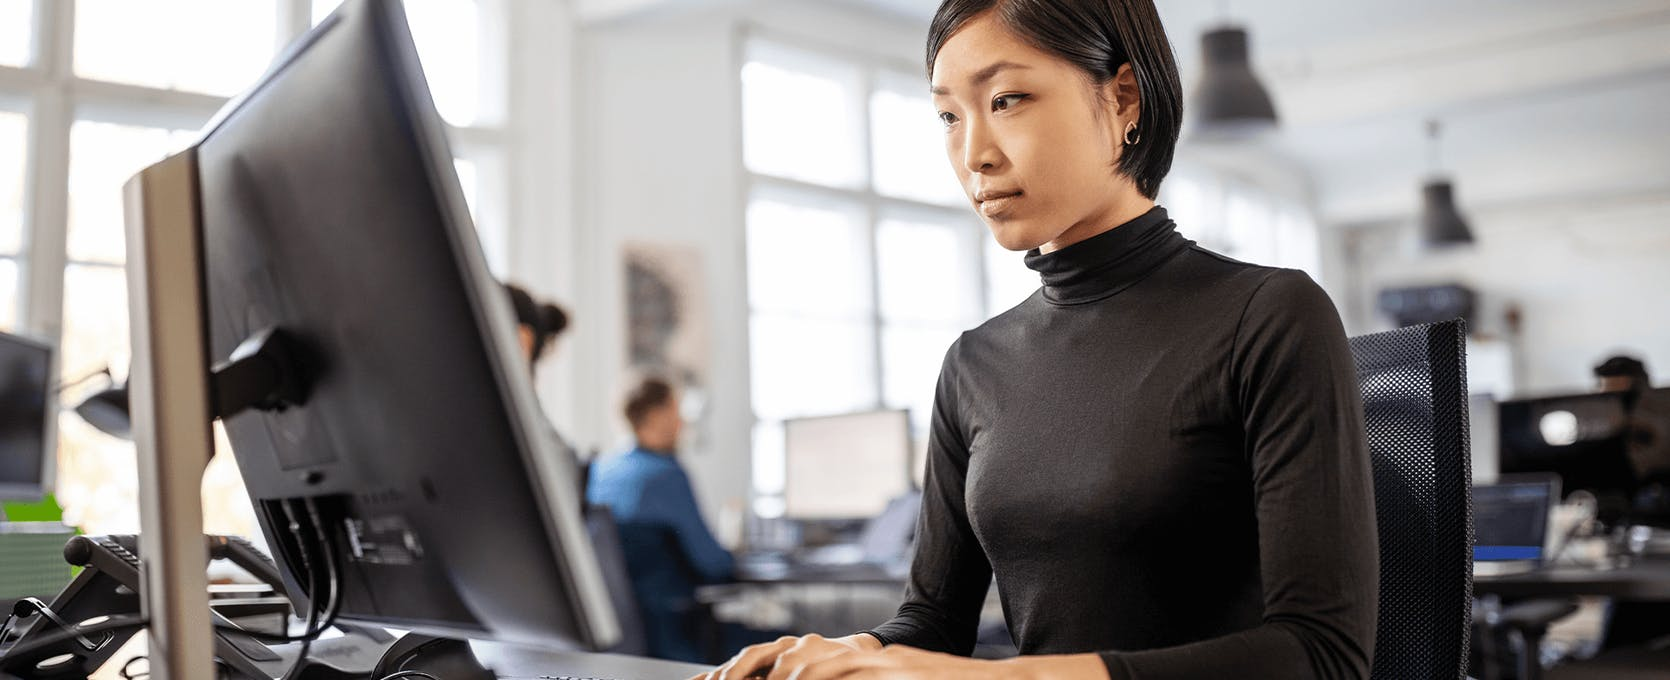 Business professionals works at office computer